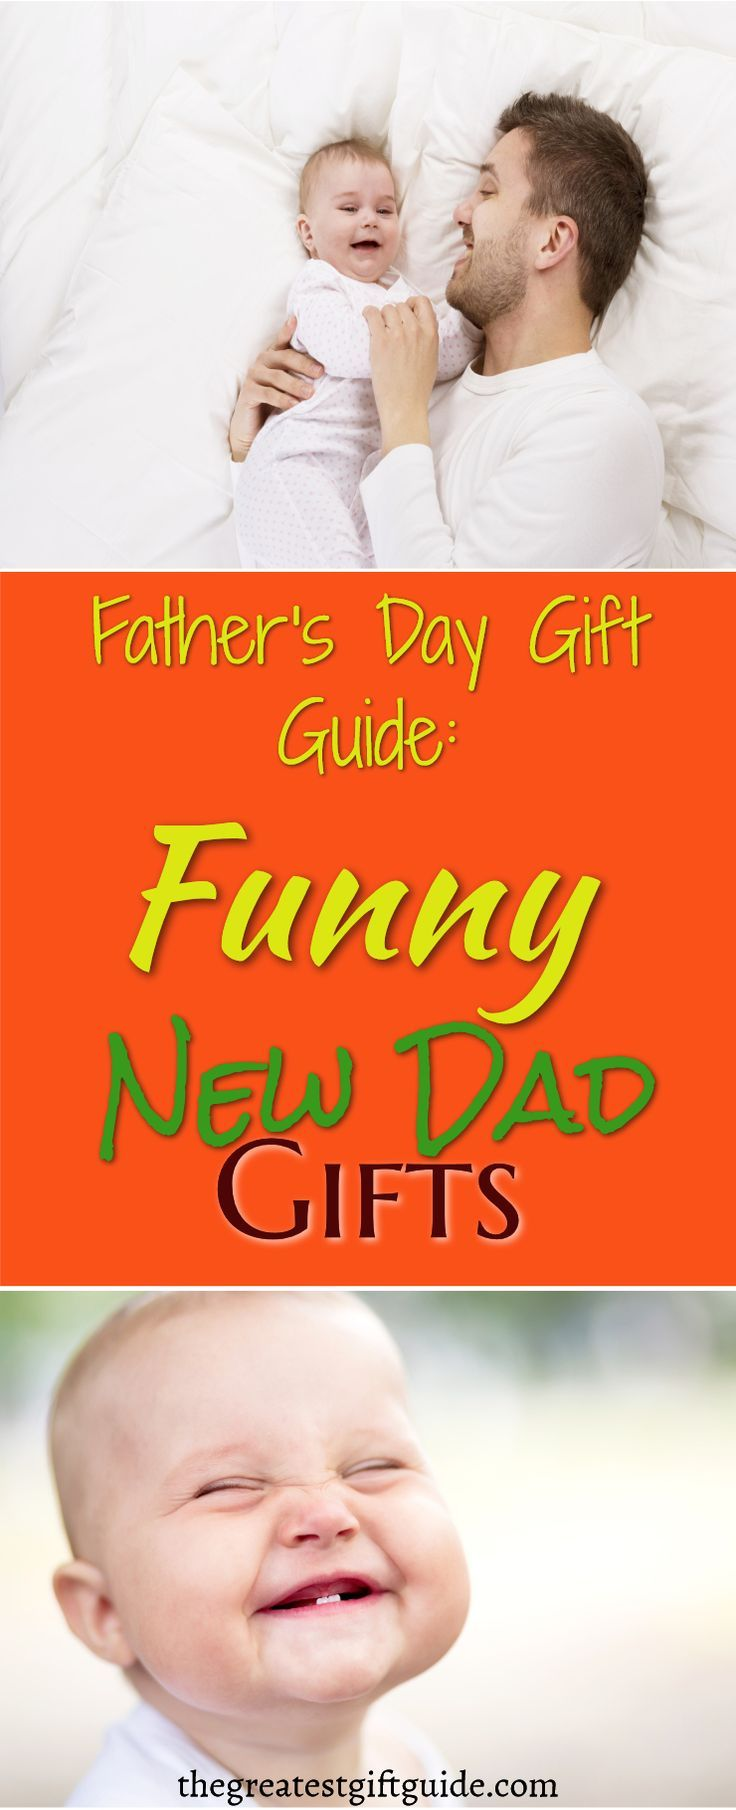 A bunch of hilariously funny new dad gifts gifts for new